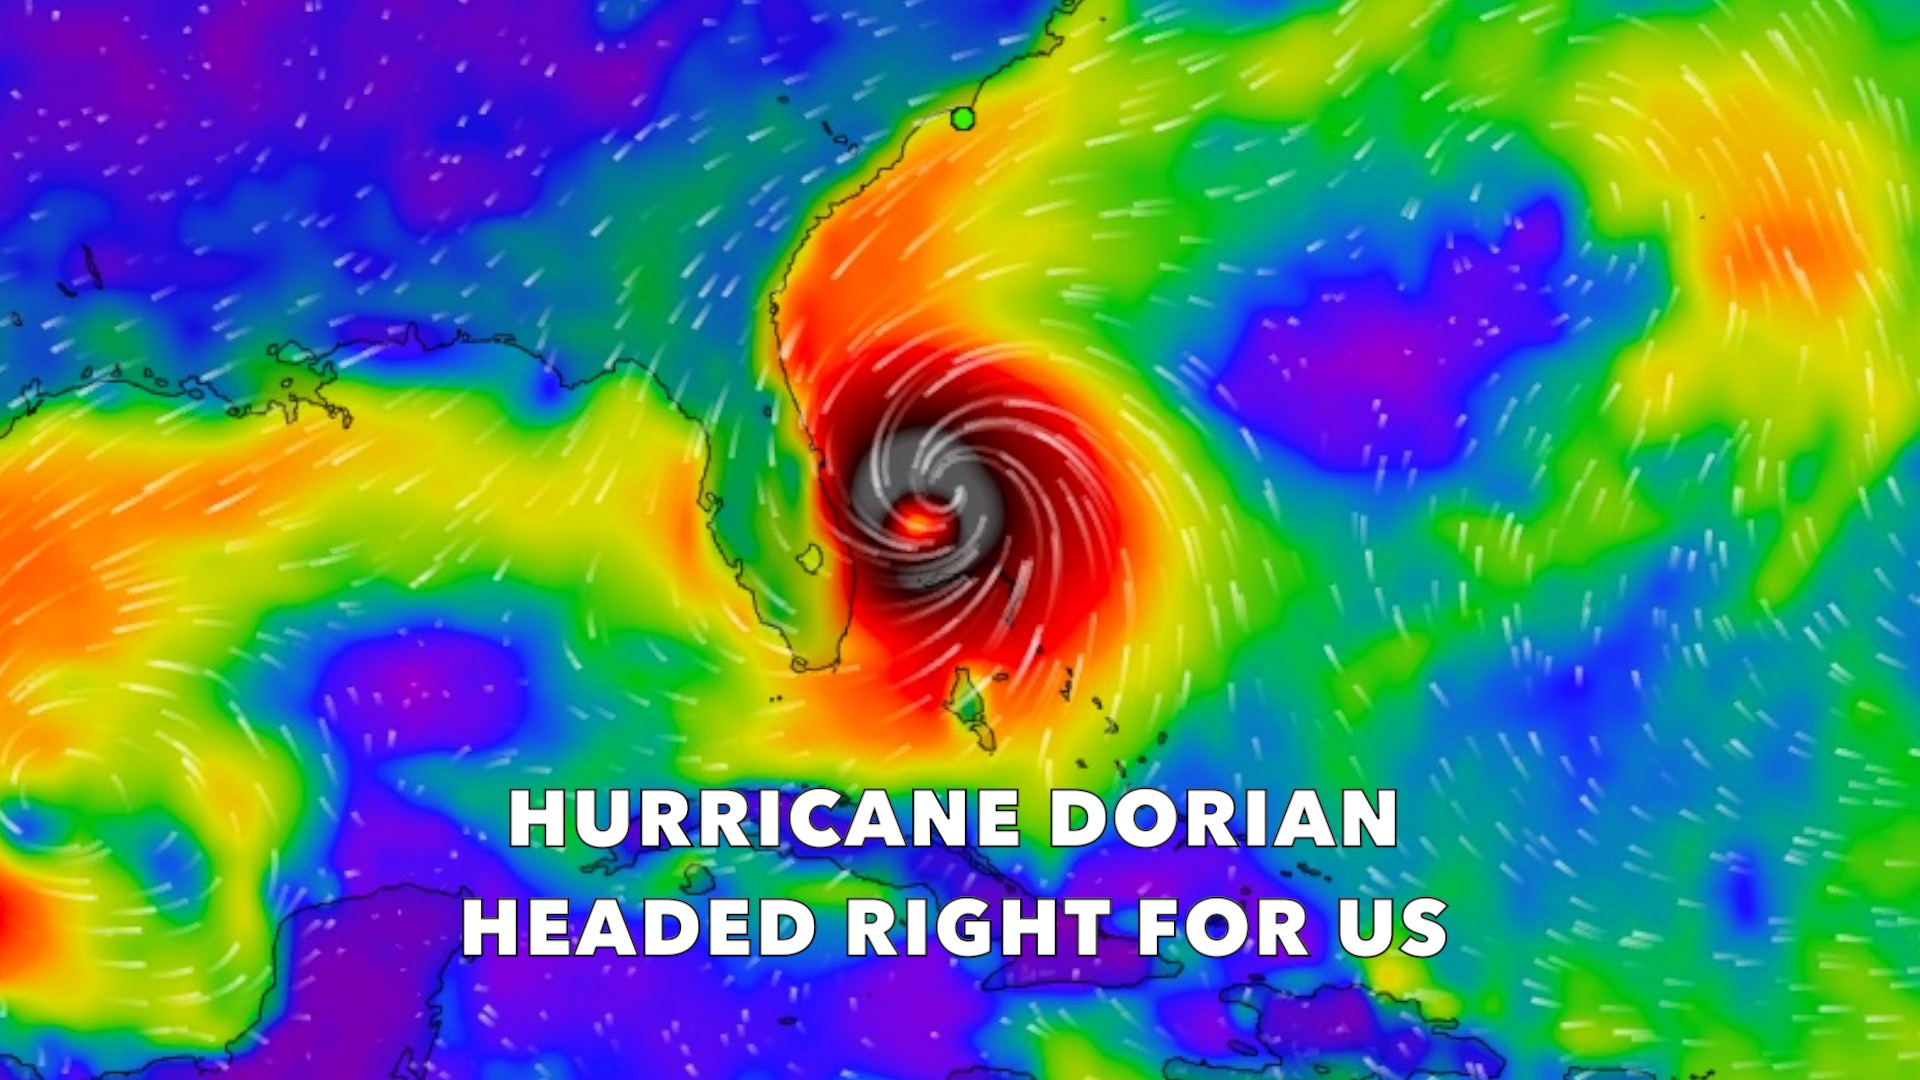 Preparing PILAR to withstand Hurricane Dorian